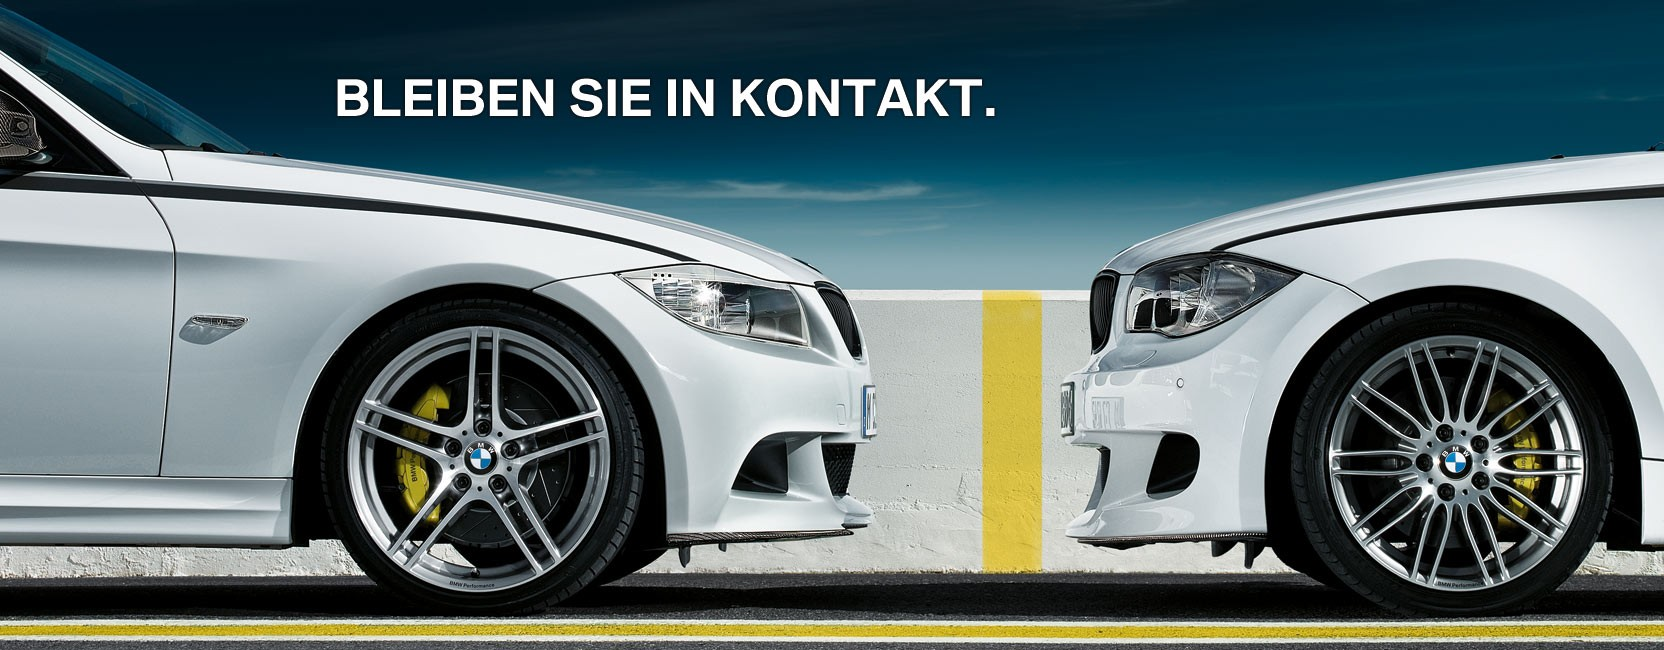 Bleiben Sie in Kontakt. Job-Newsletter. BMW.